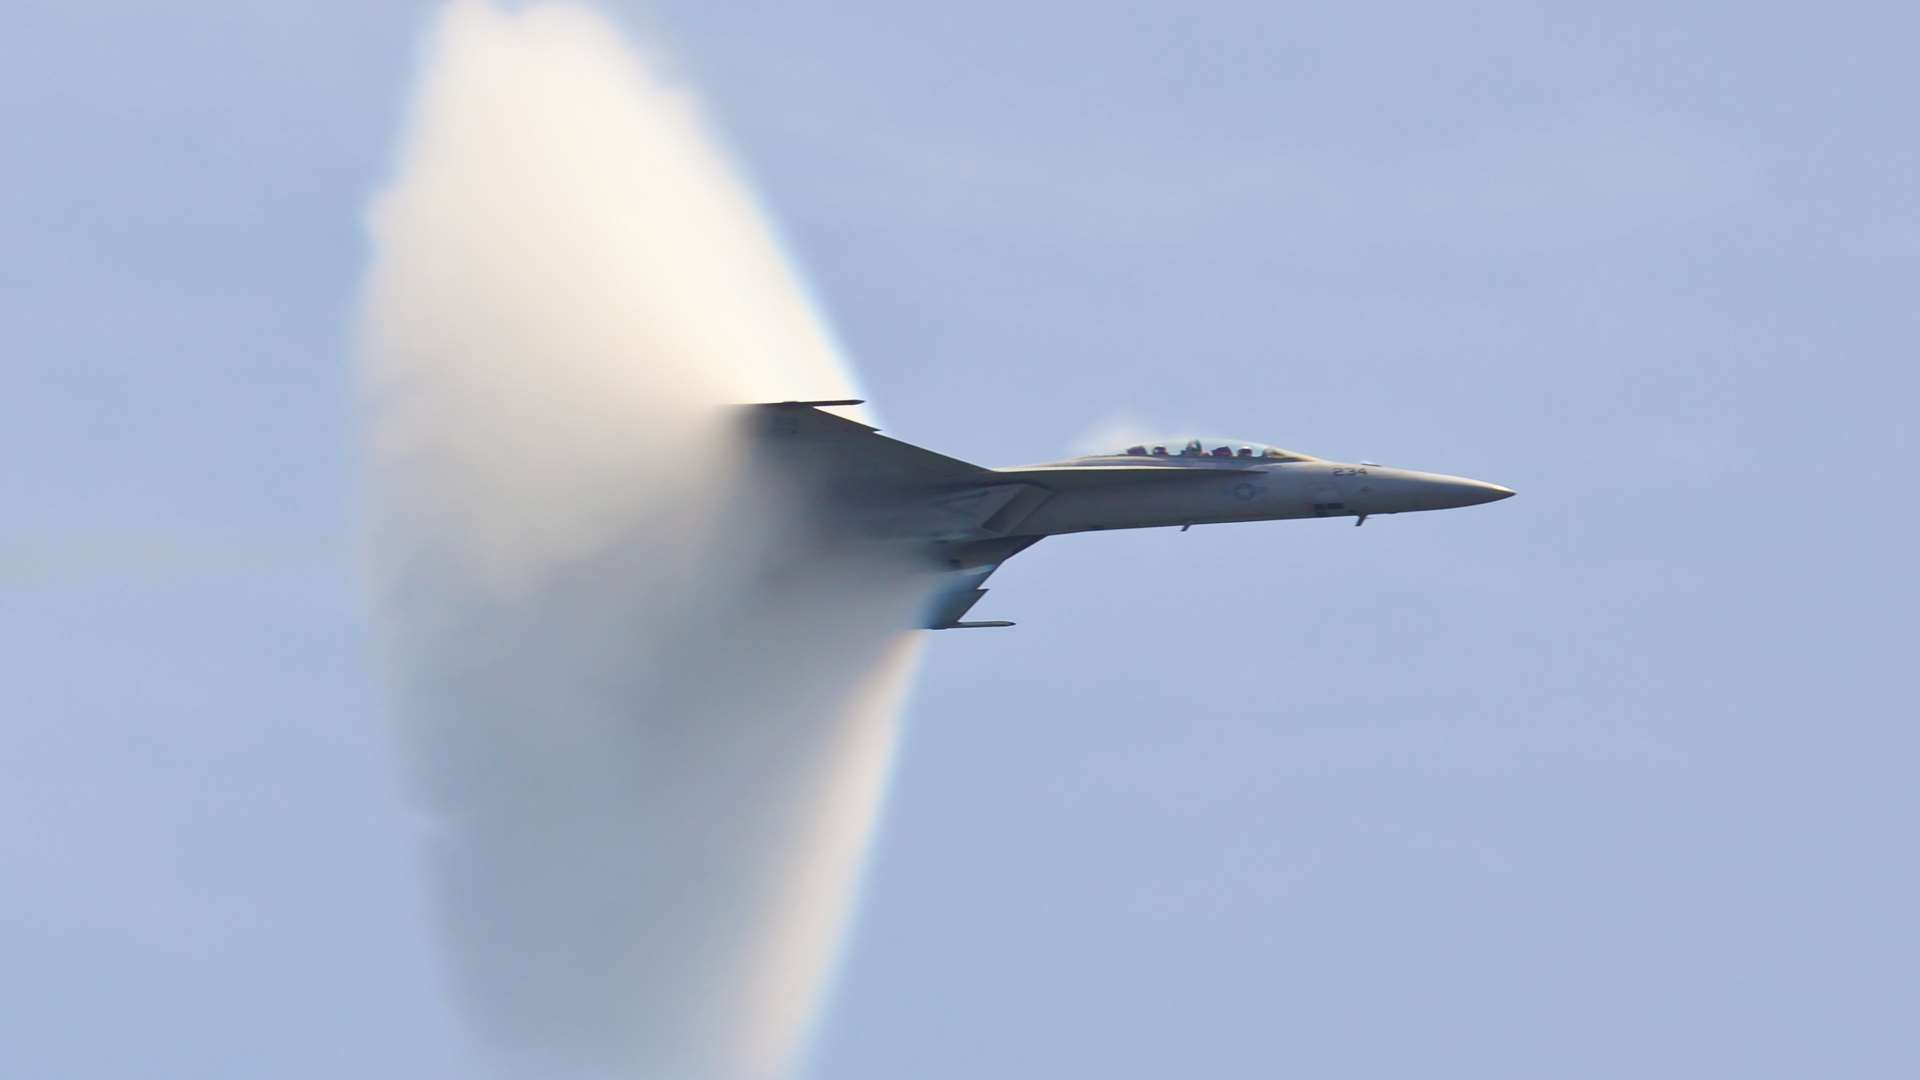 Some have reported the noise could have been caused by a sonic boom. Picture: Rypson